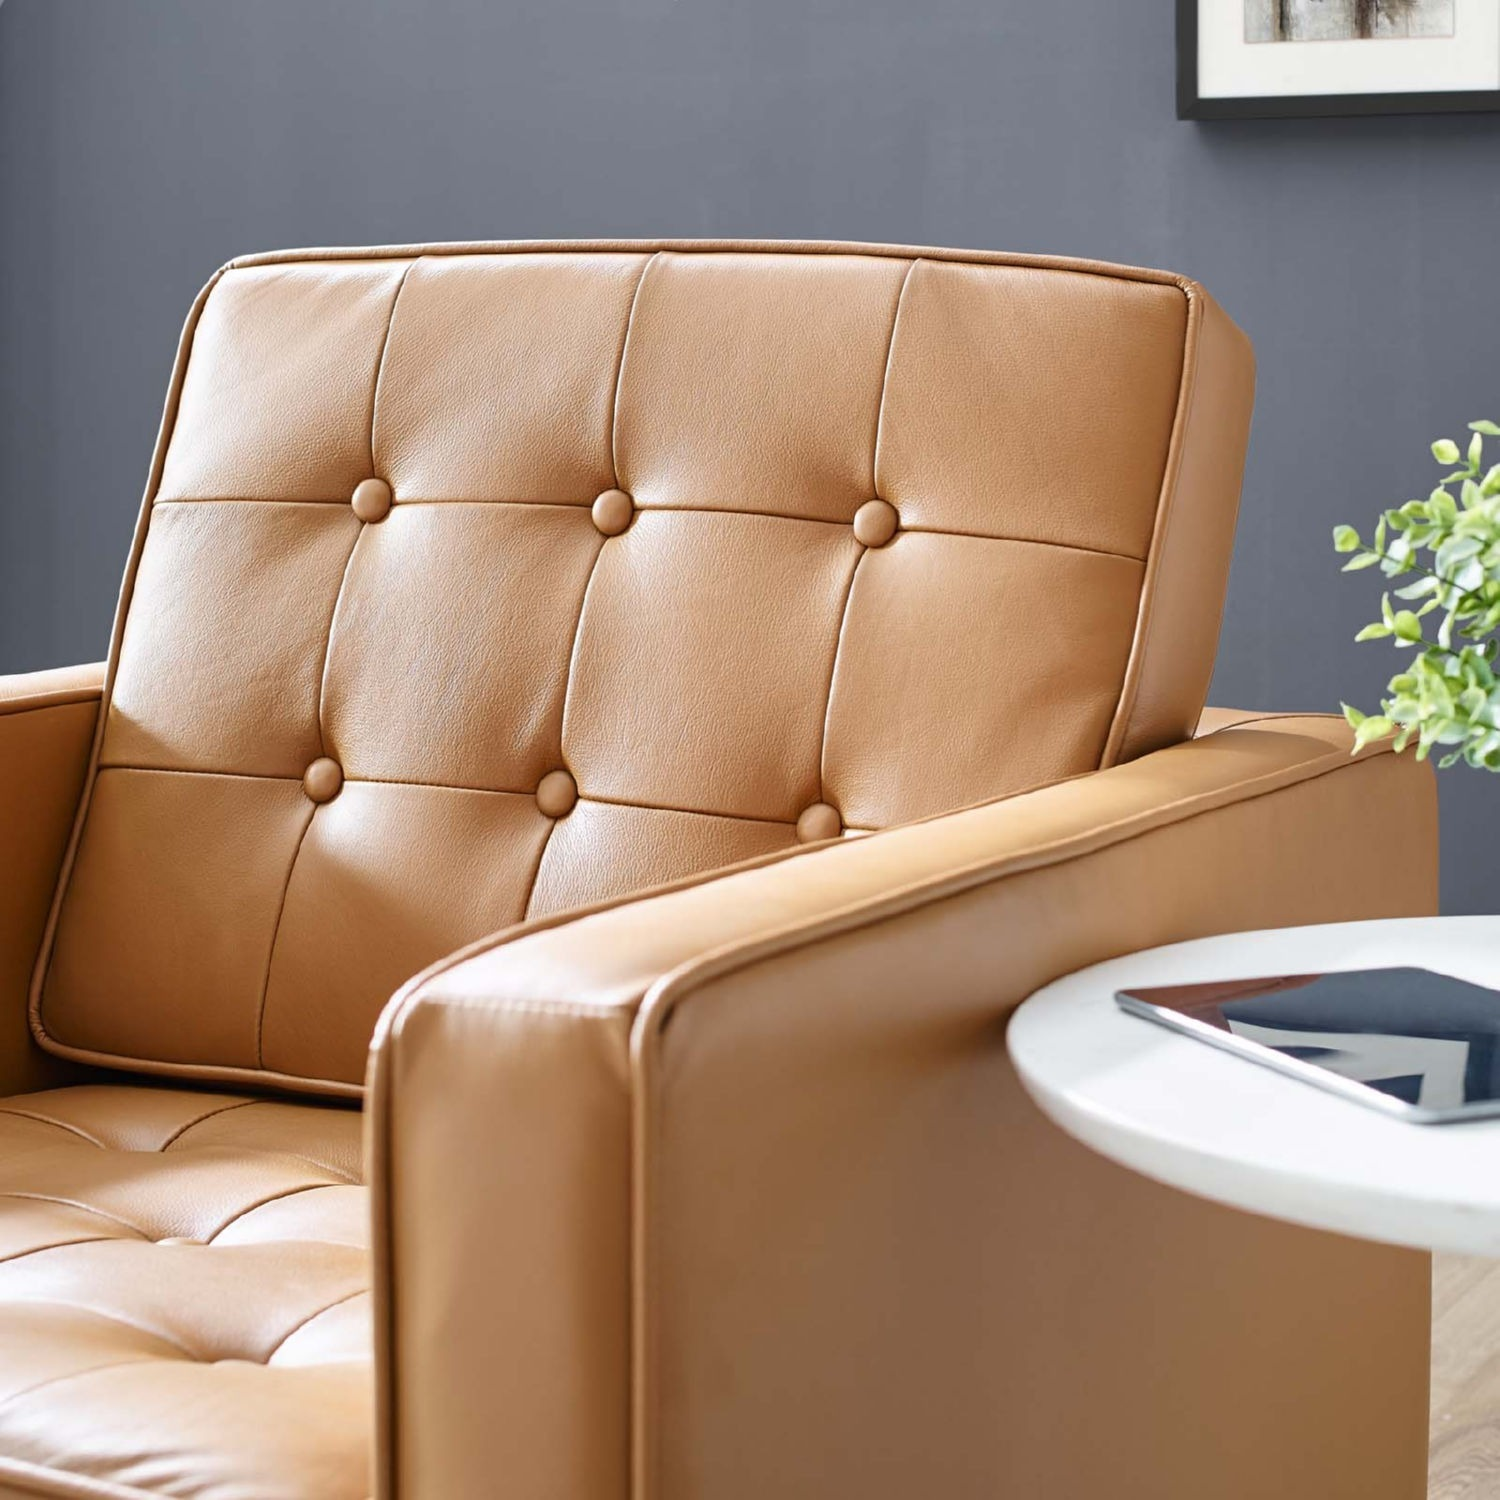 Modern Armchair In Tan Leather W/ Tufted Buttons - image-5